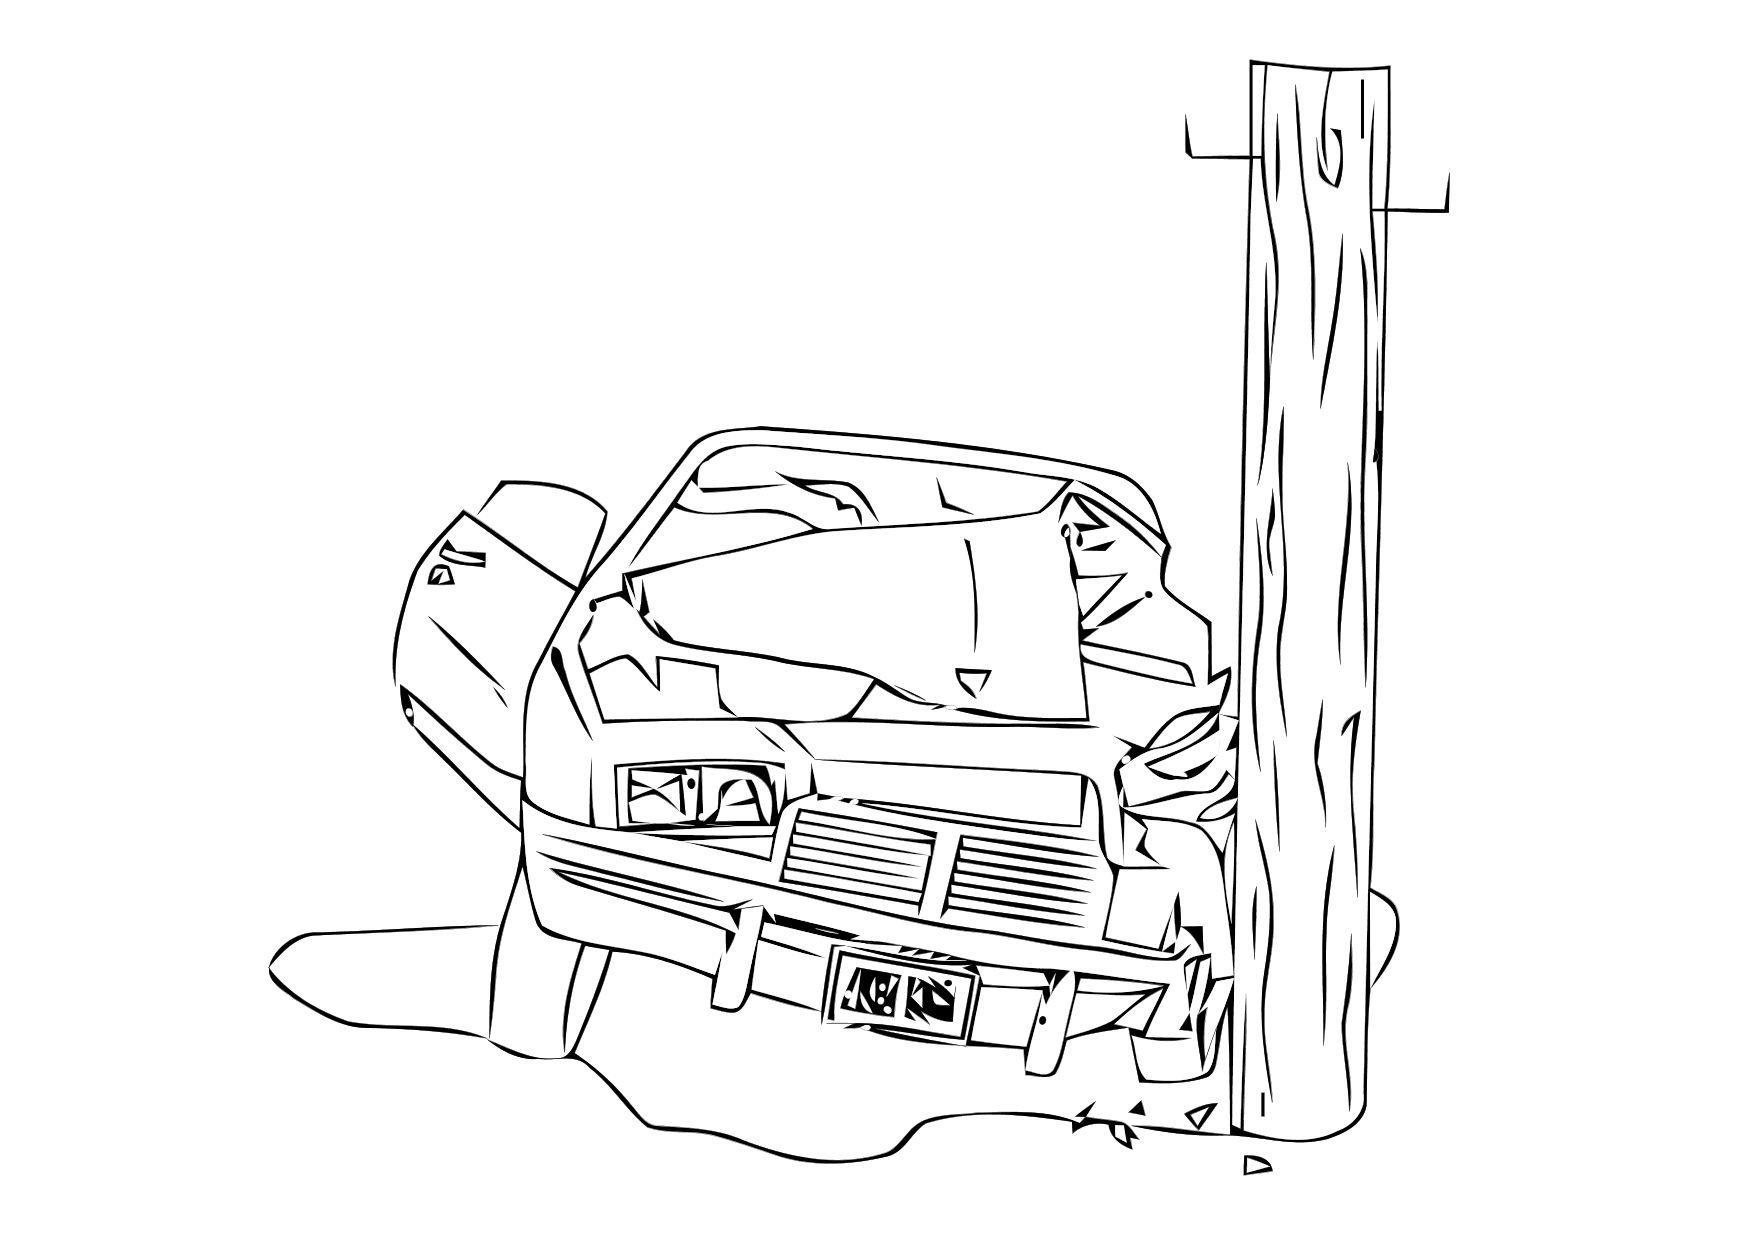 Stunning traffic accident sketch photos electrical system block